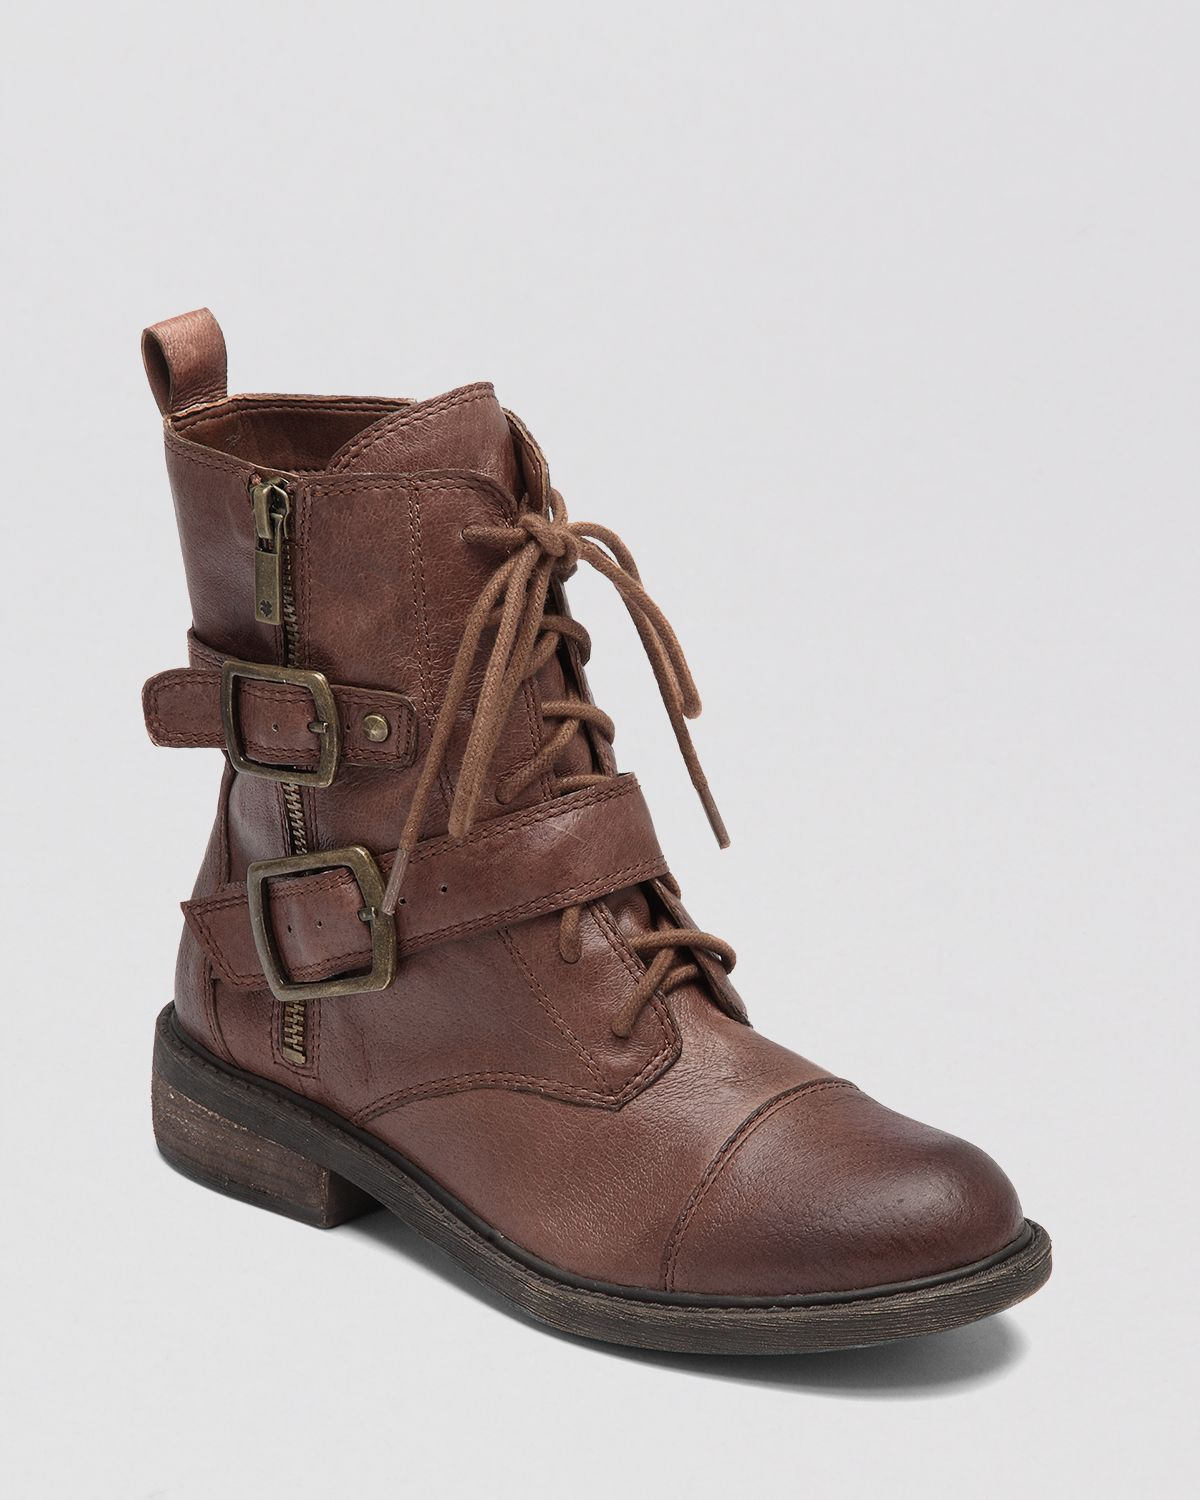 Lucky brand Combat Boots Nolan in Brown | Lyst